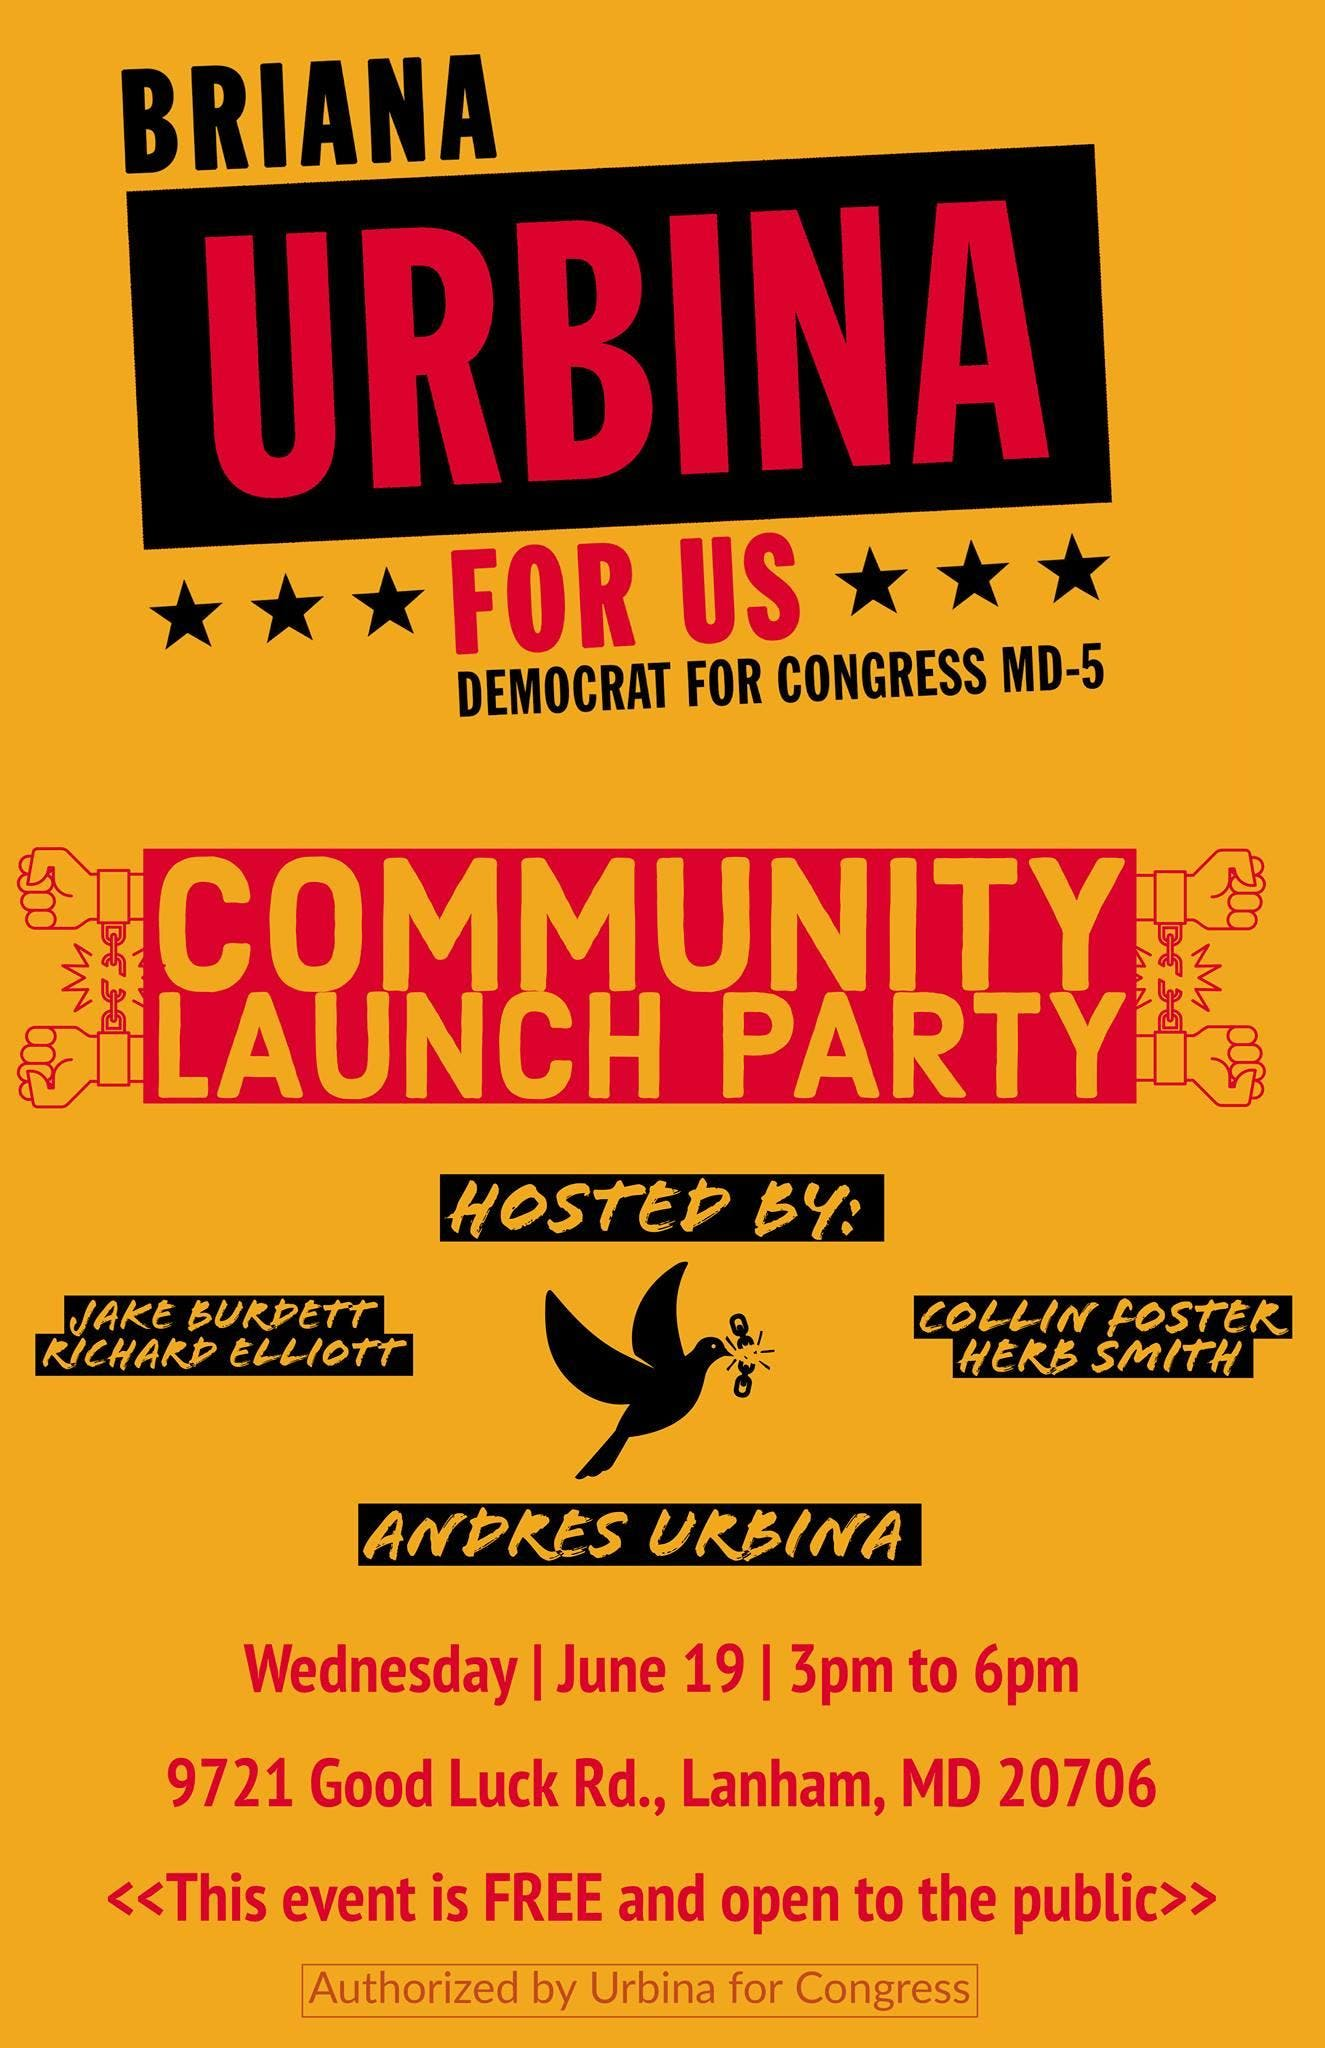 Community Launch Party